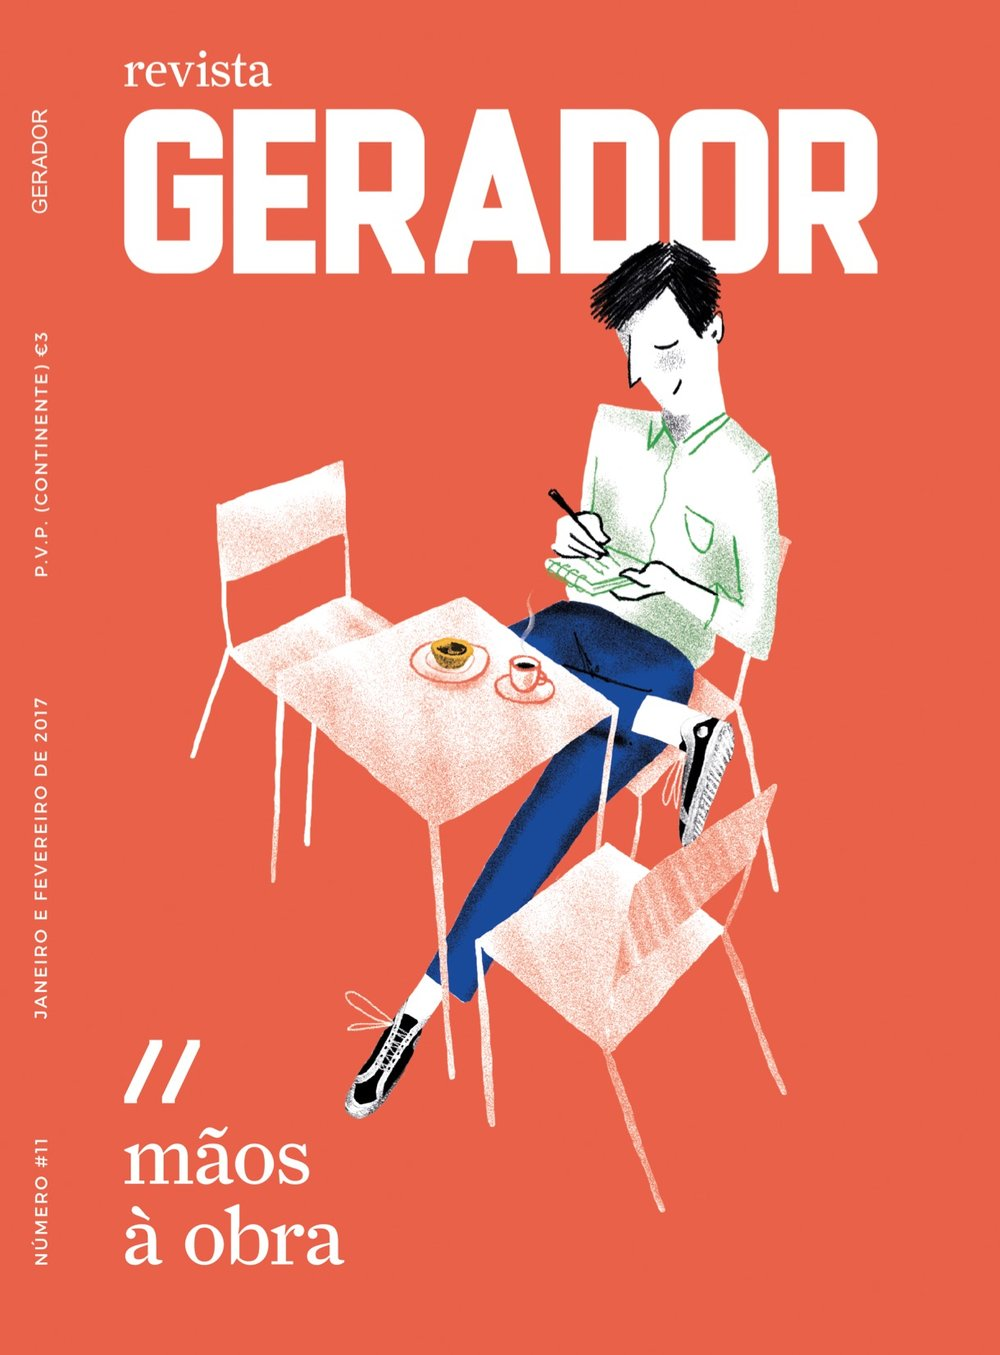 Revista GERADOR #11_1.jpeg